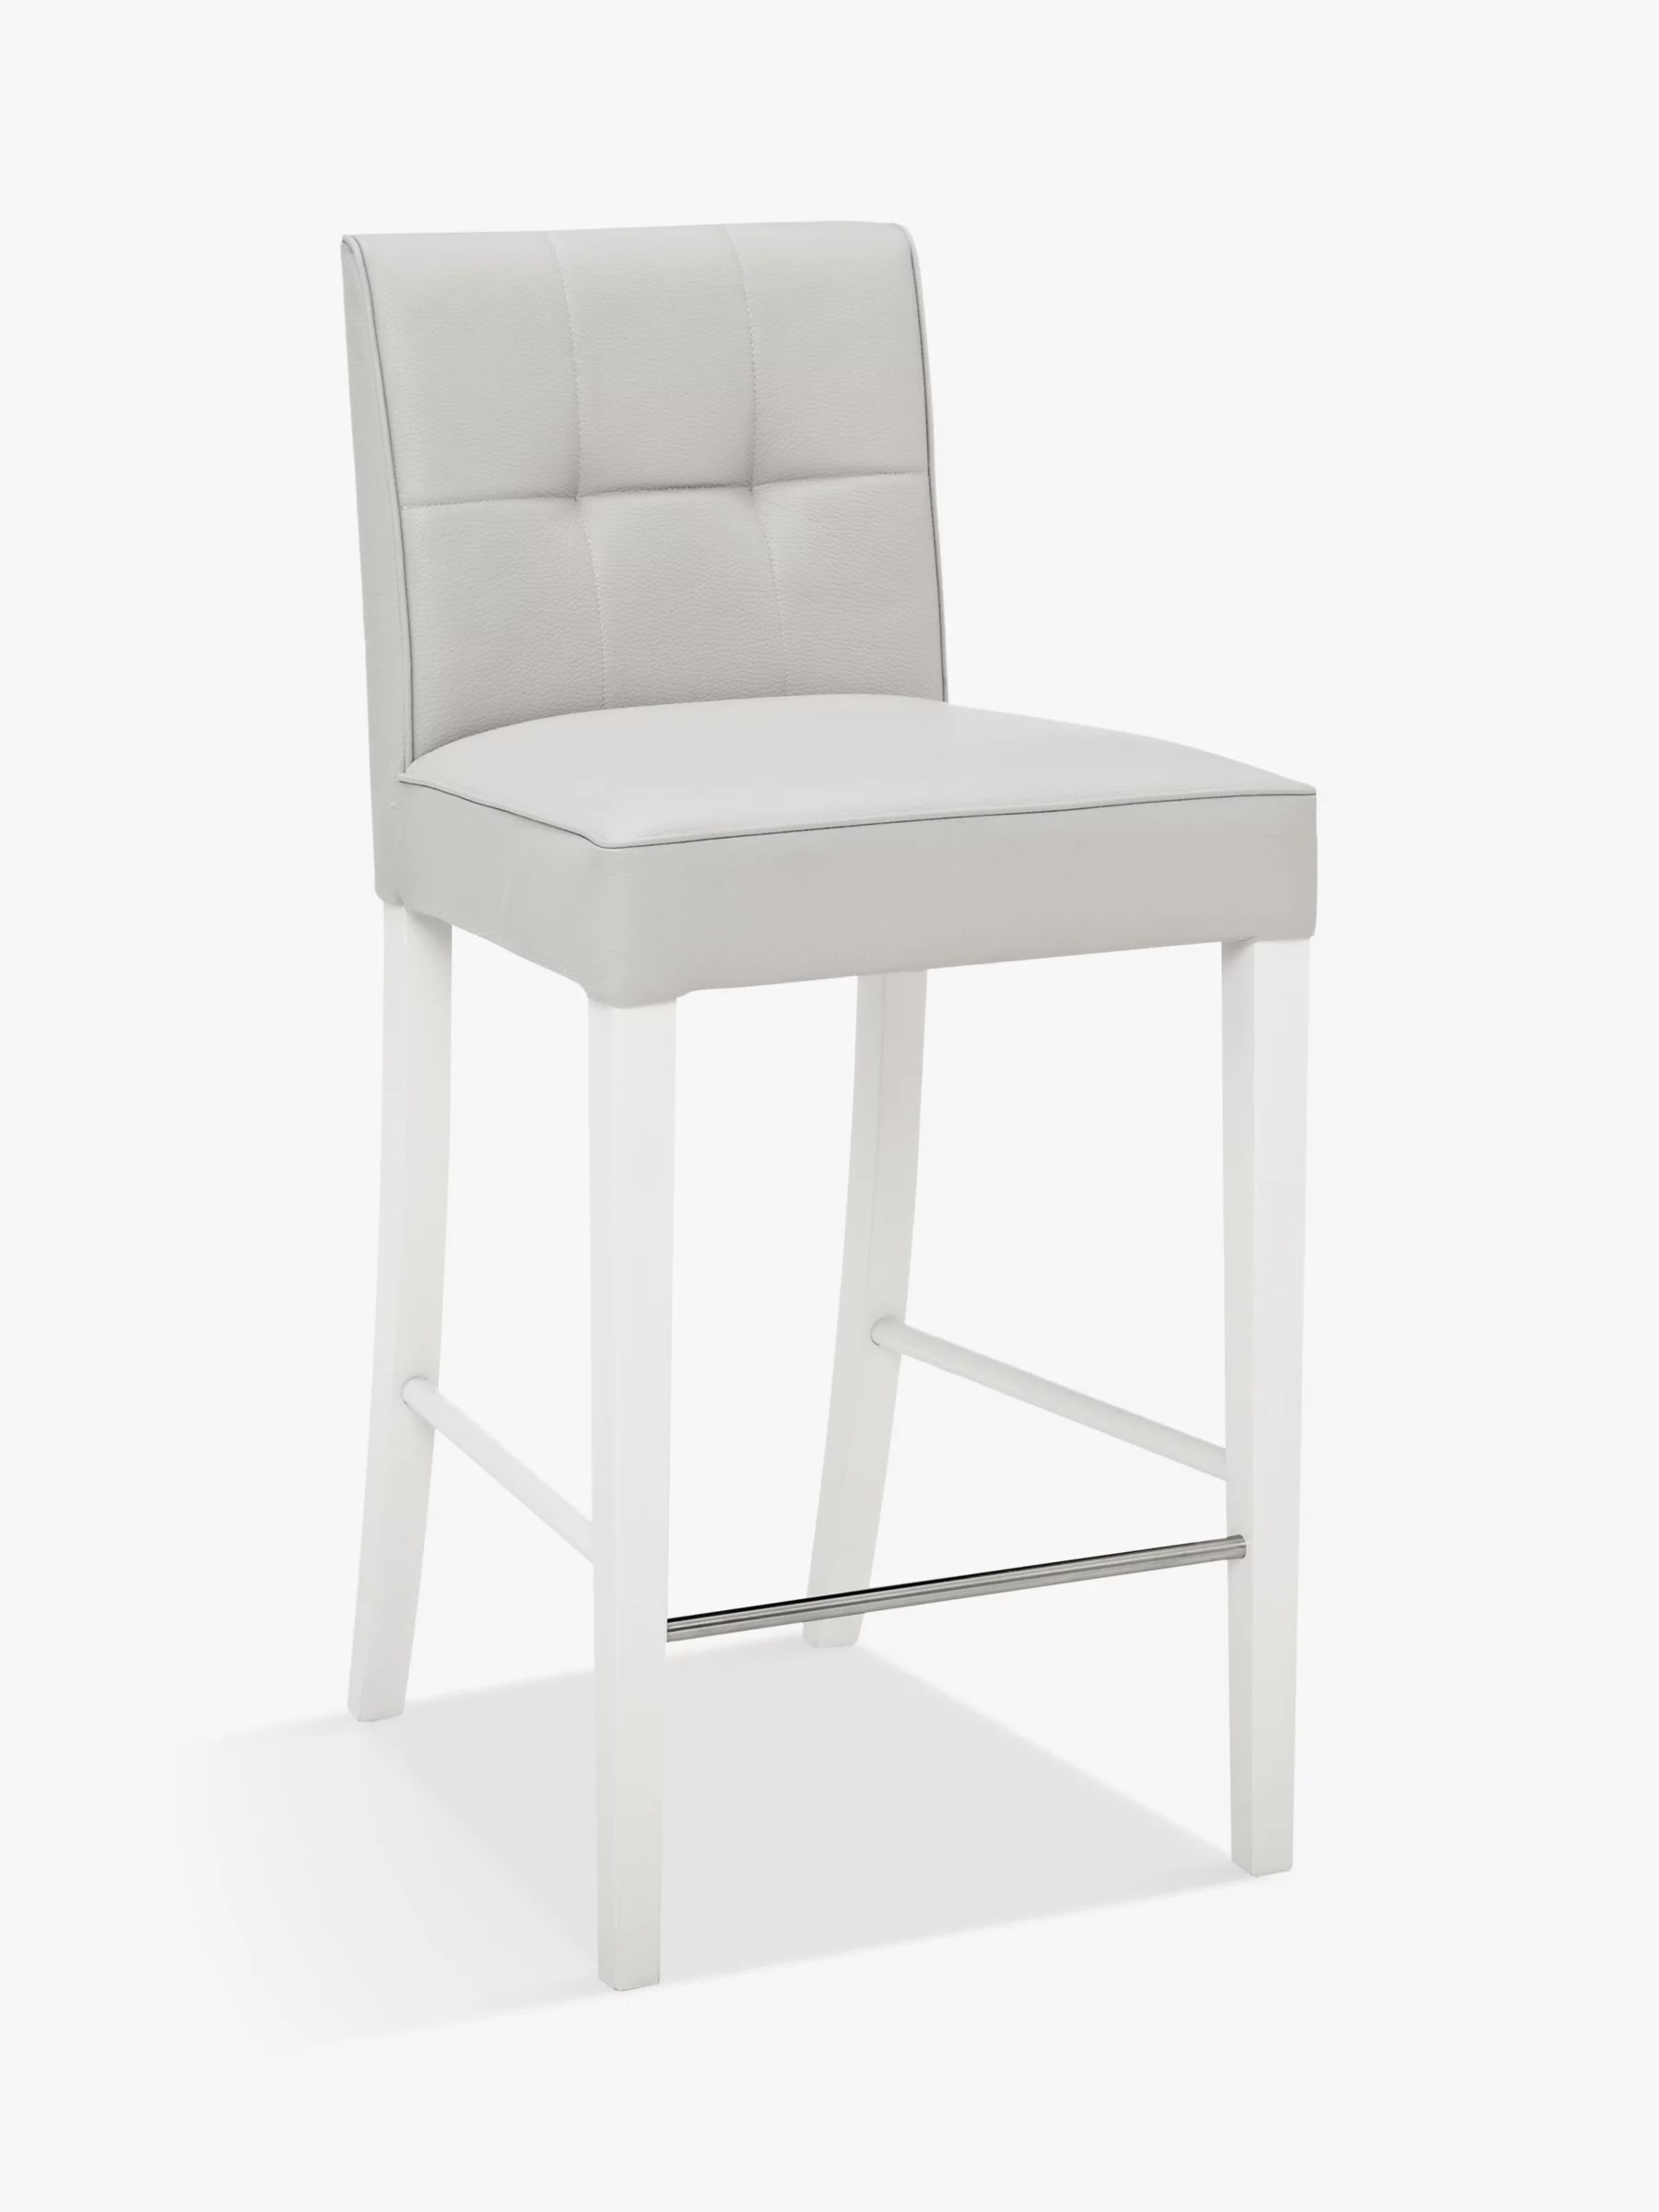 bar stool chair grey black pedestal table and chairs john lewis simone faux leather at